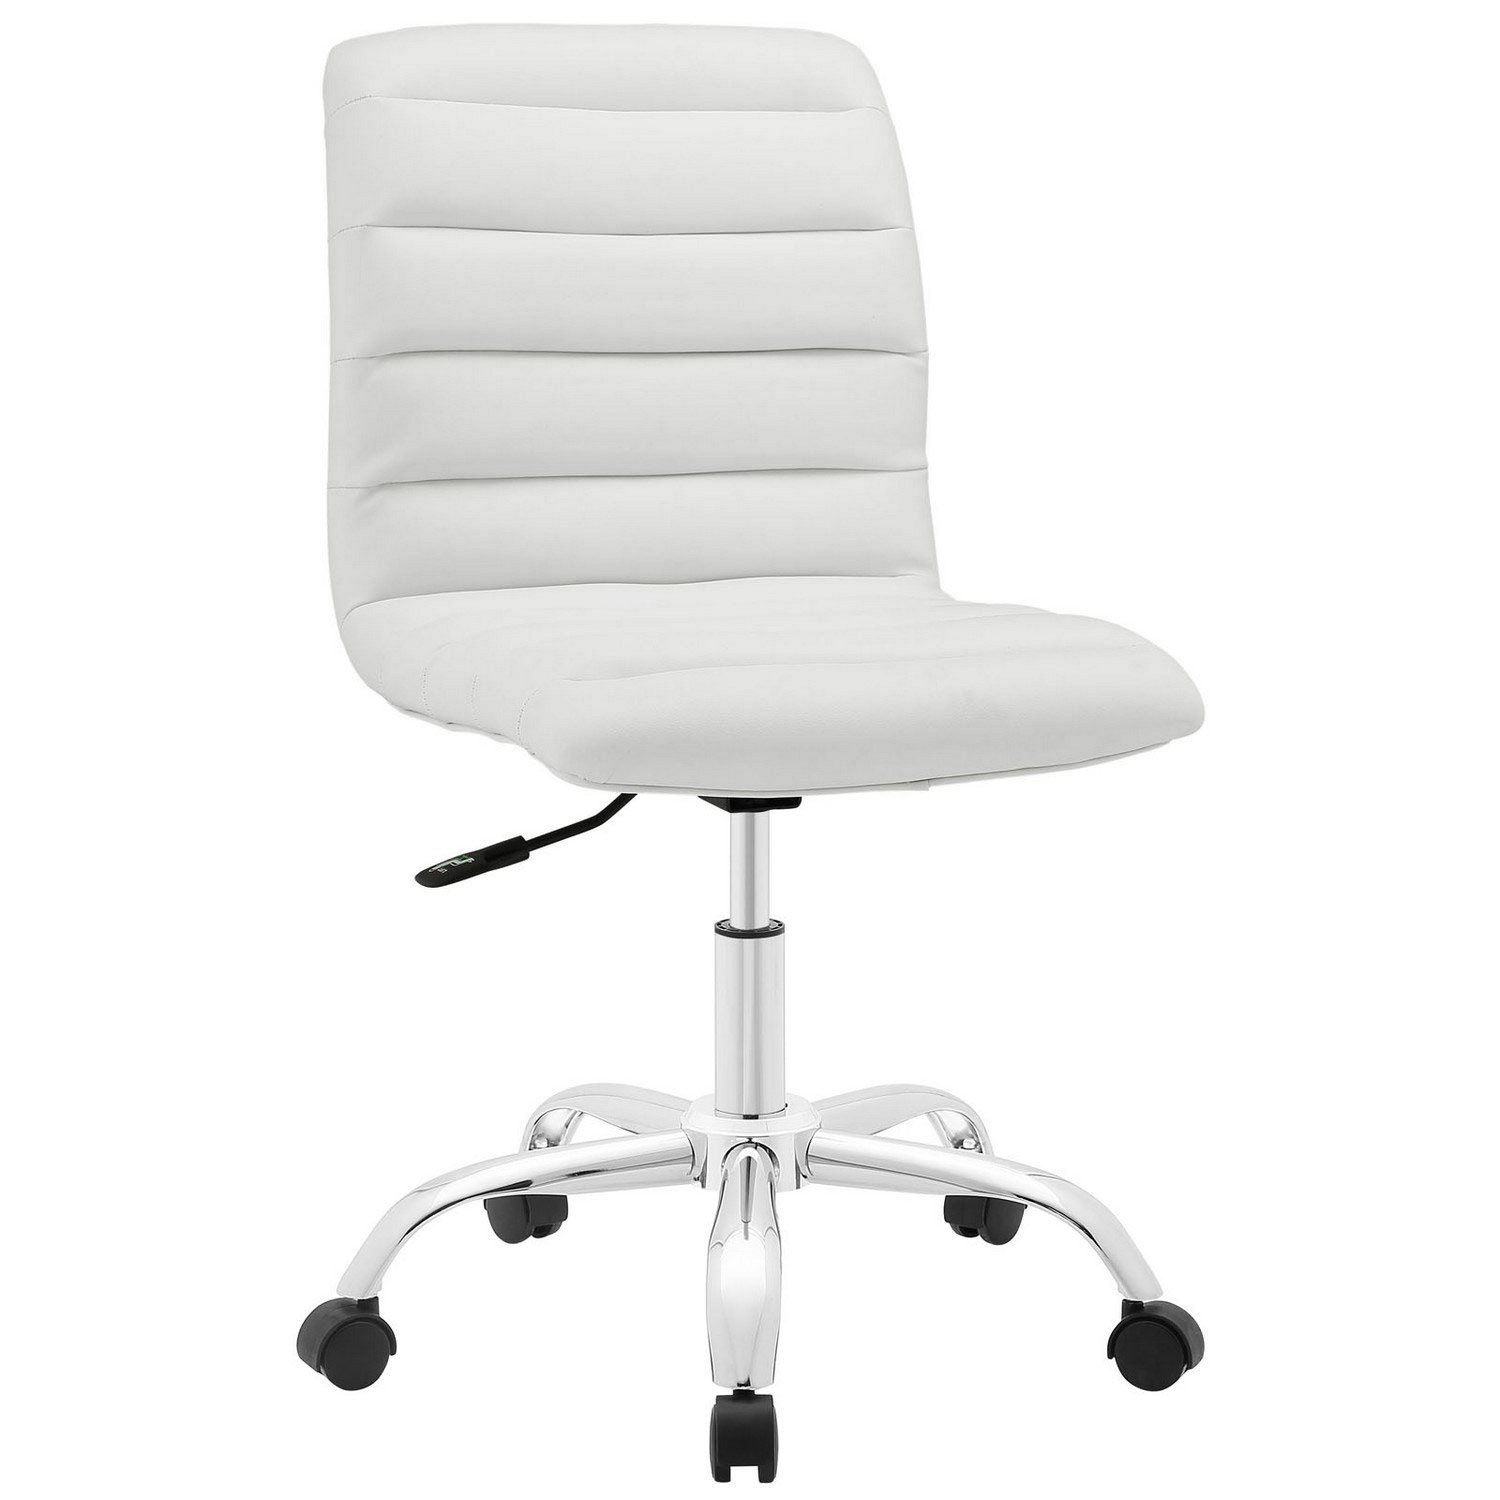 Modway Ripple Armless Mid Back Office Chair - White